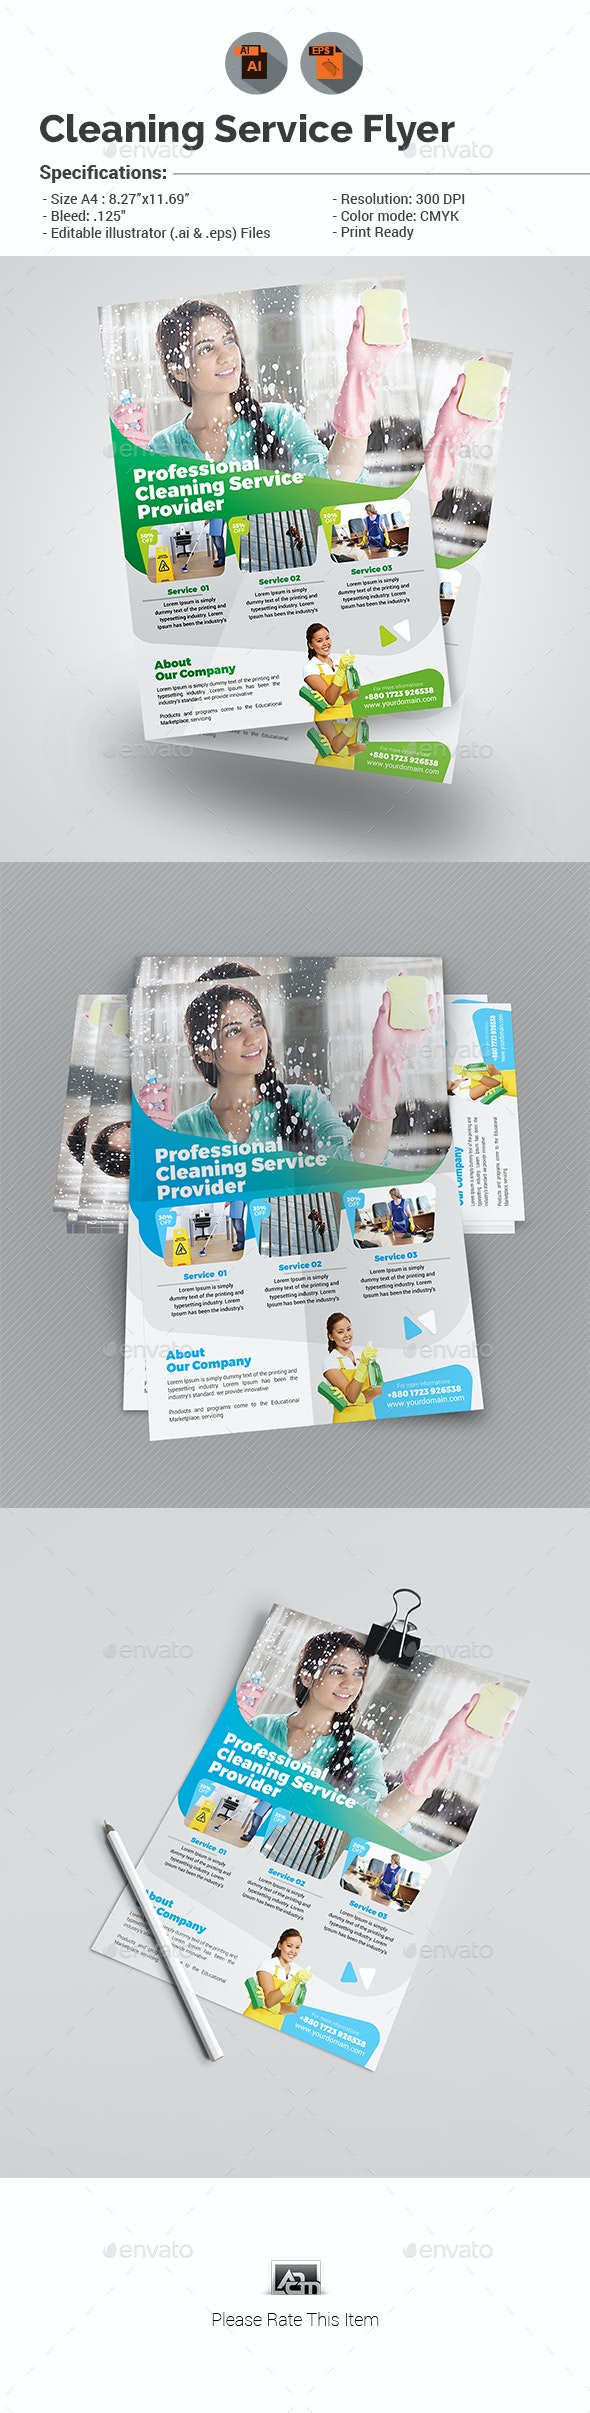 Cleaning Services Flyer V5 - Commerce Flyers